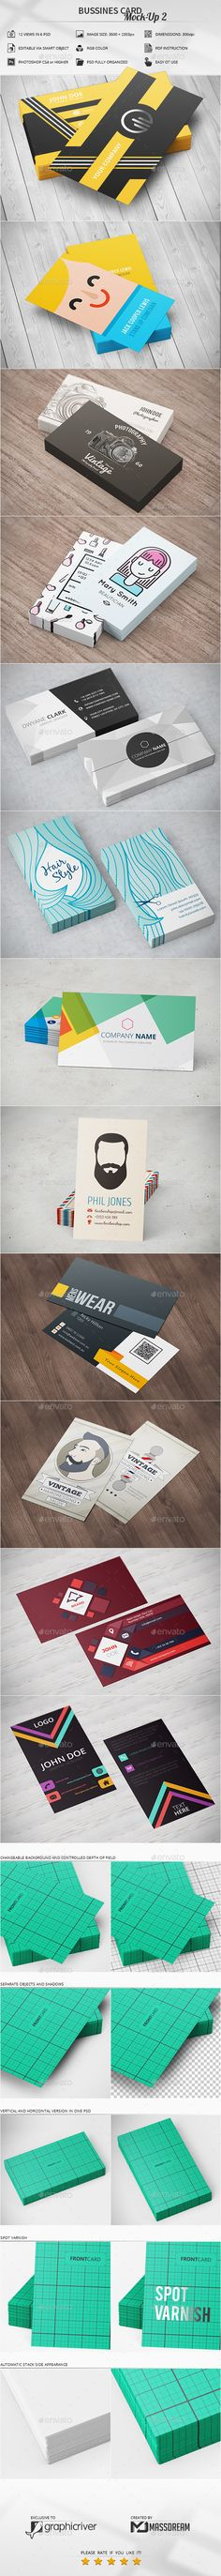 Business card 24 in 1 bundle pinterest business cards mockup business card 24 in 1 bundle pinterest business cards mockup and business reheart Gallery